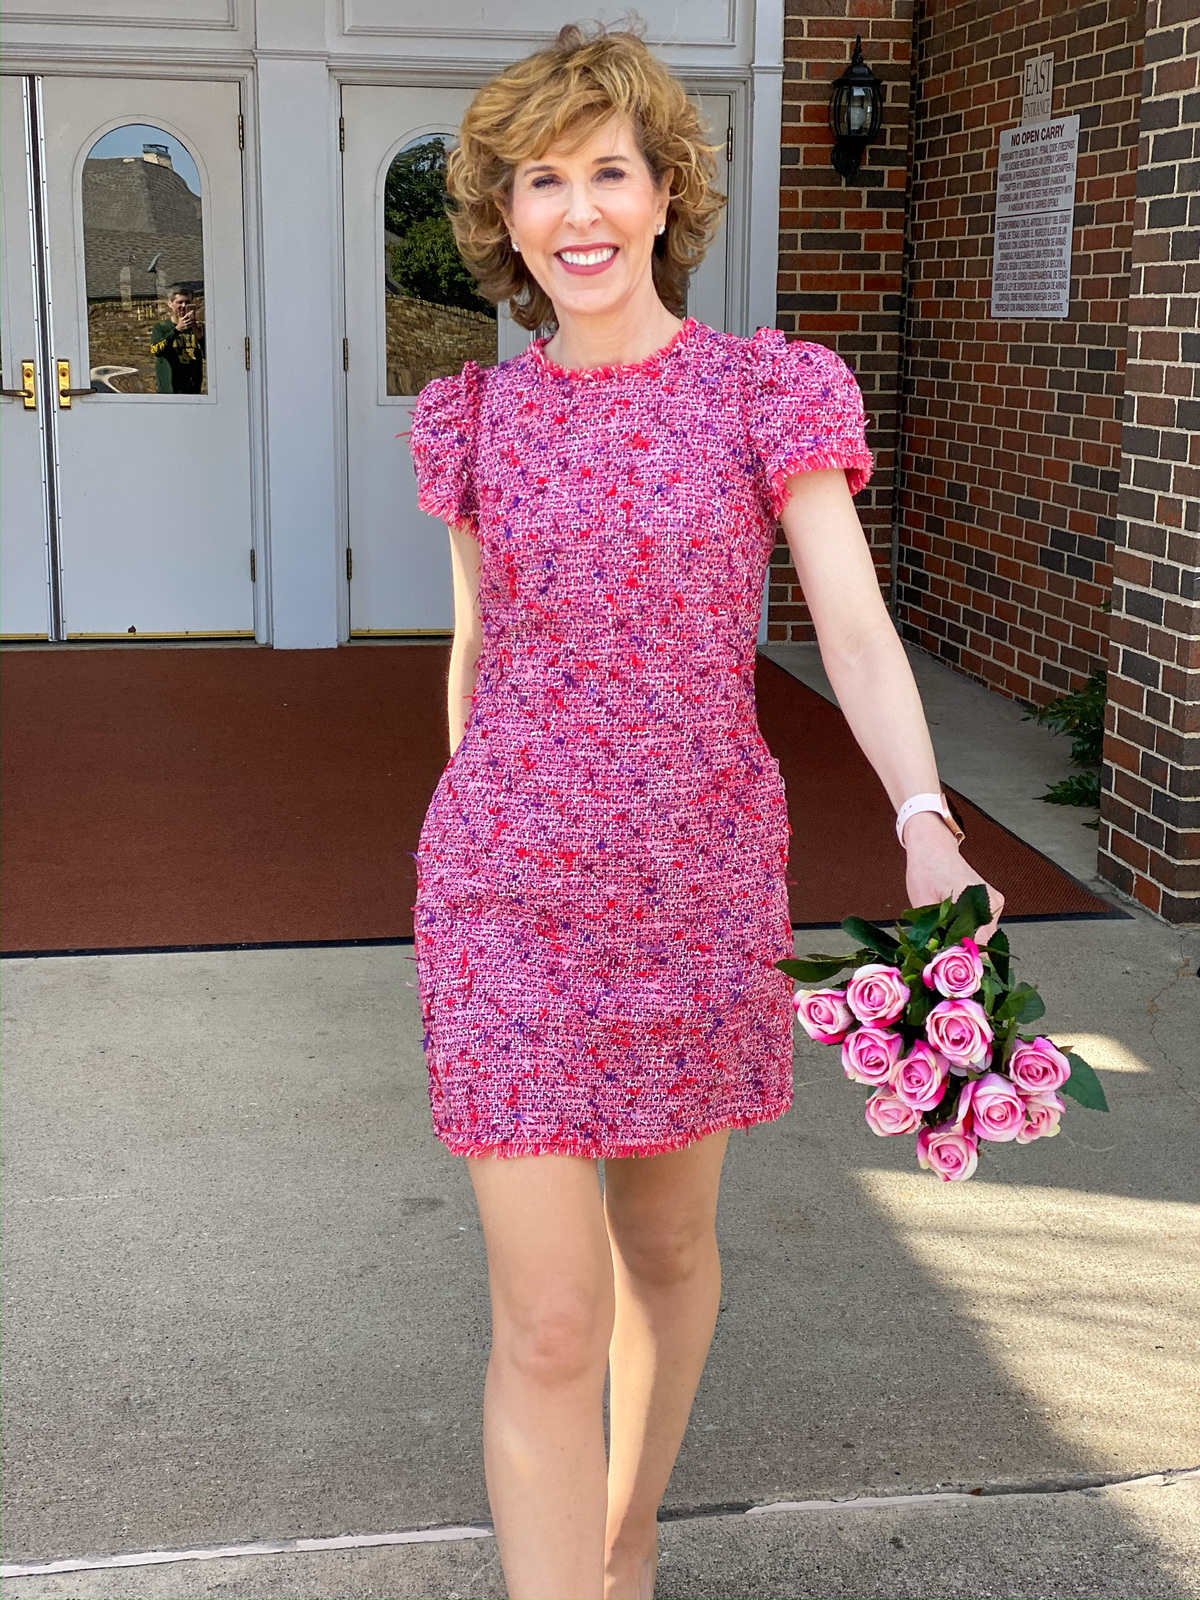 woman in pink tweed dress holding pink roses